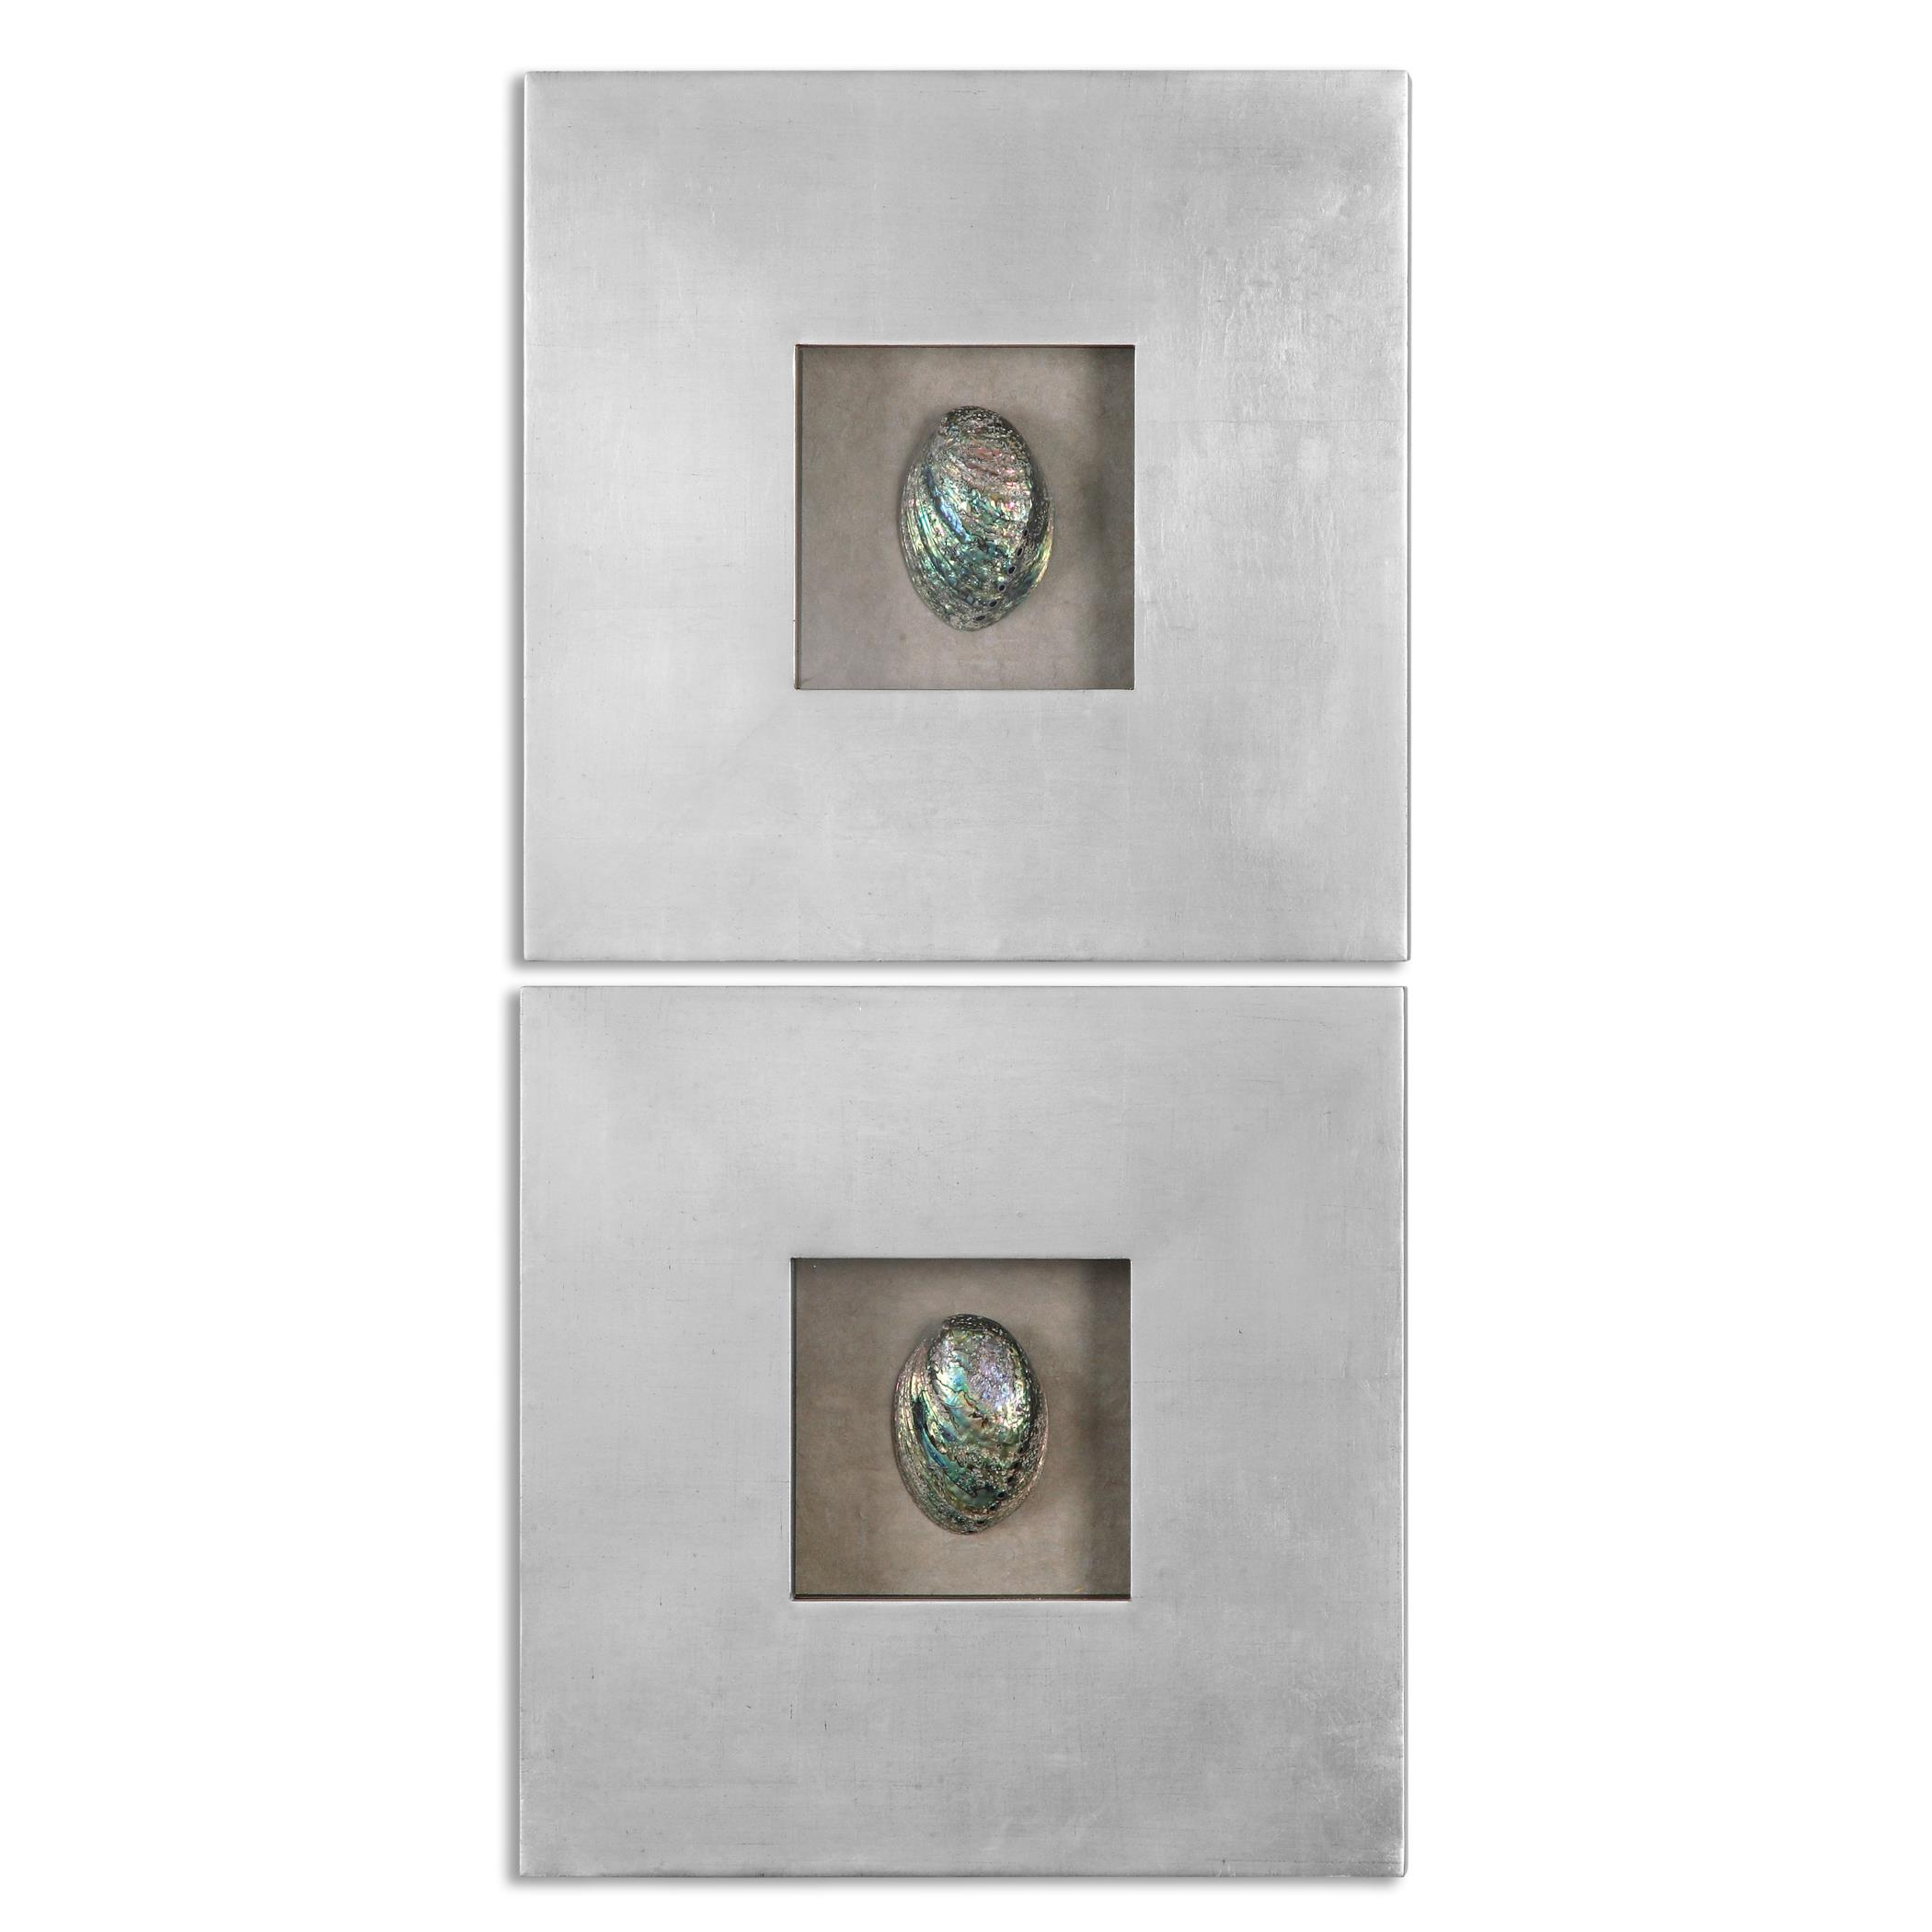 Uttermost Alternative Wall Decor Abalone Shells Silver Wall Art, S/2 - Item Number: 14544